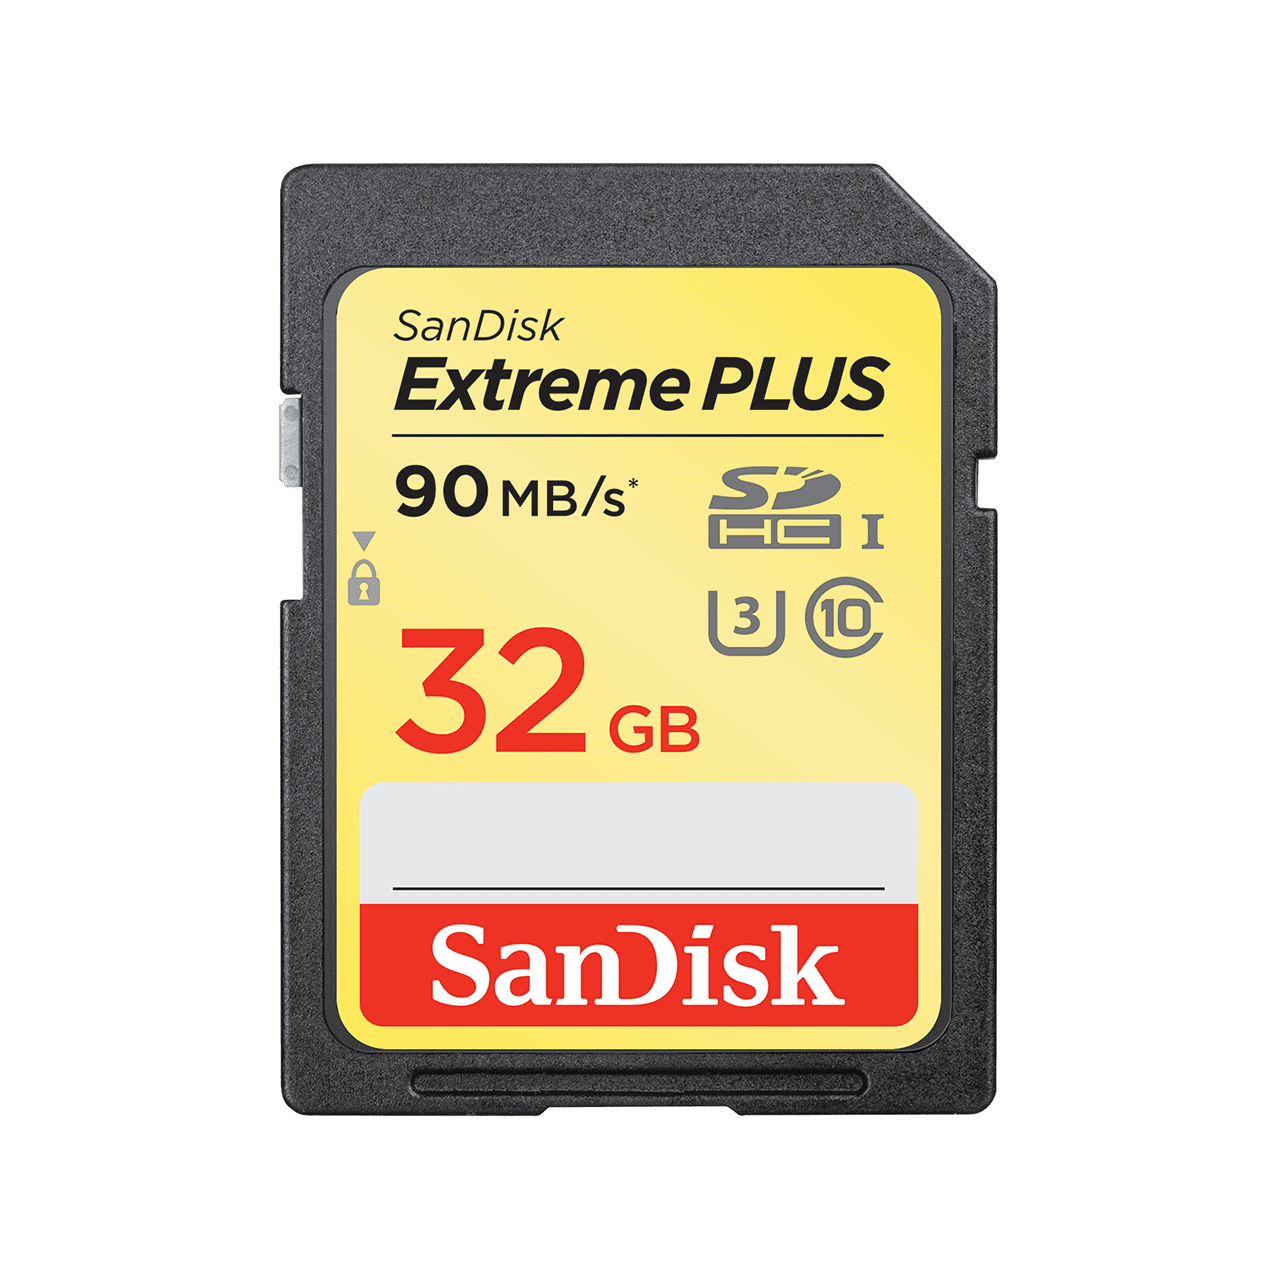 SanDisk extreme plus SD UHS-I 32GB 90mbs product image